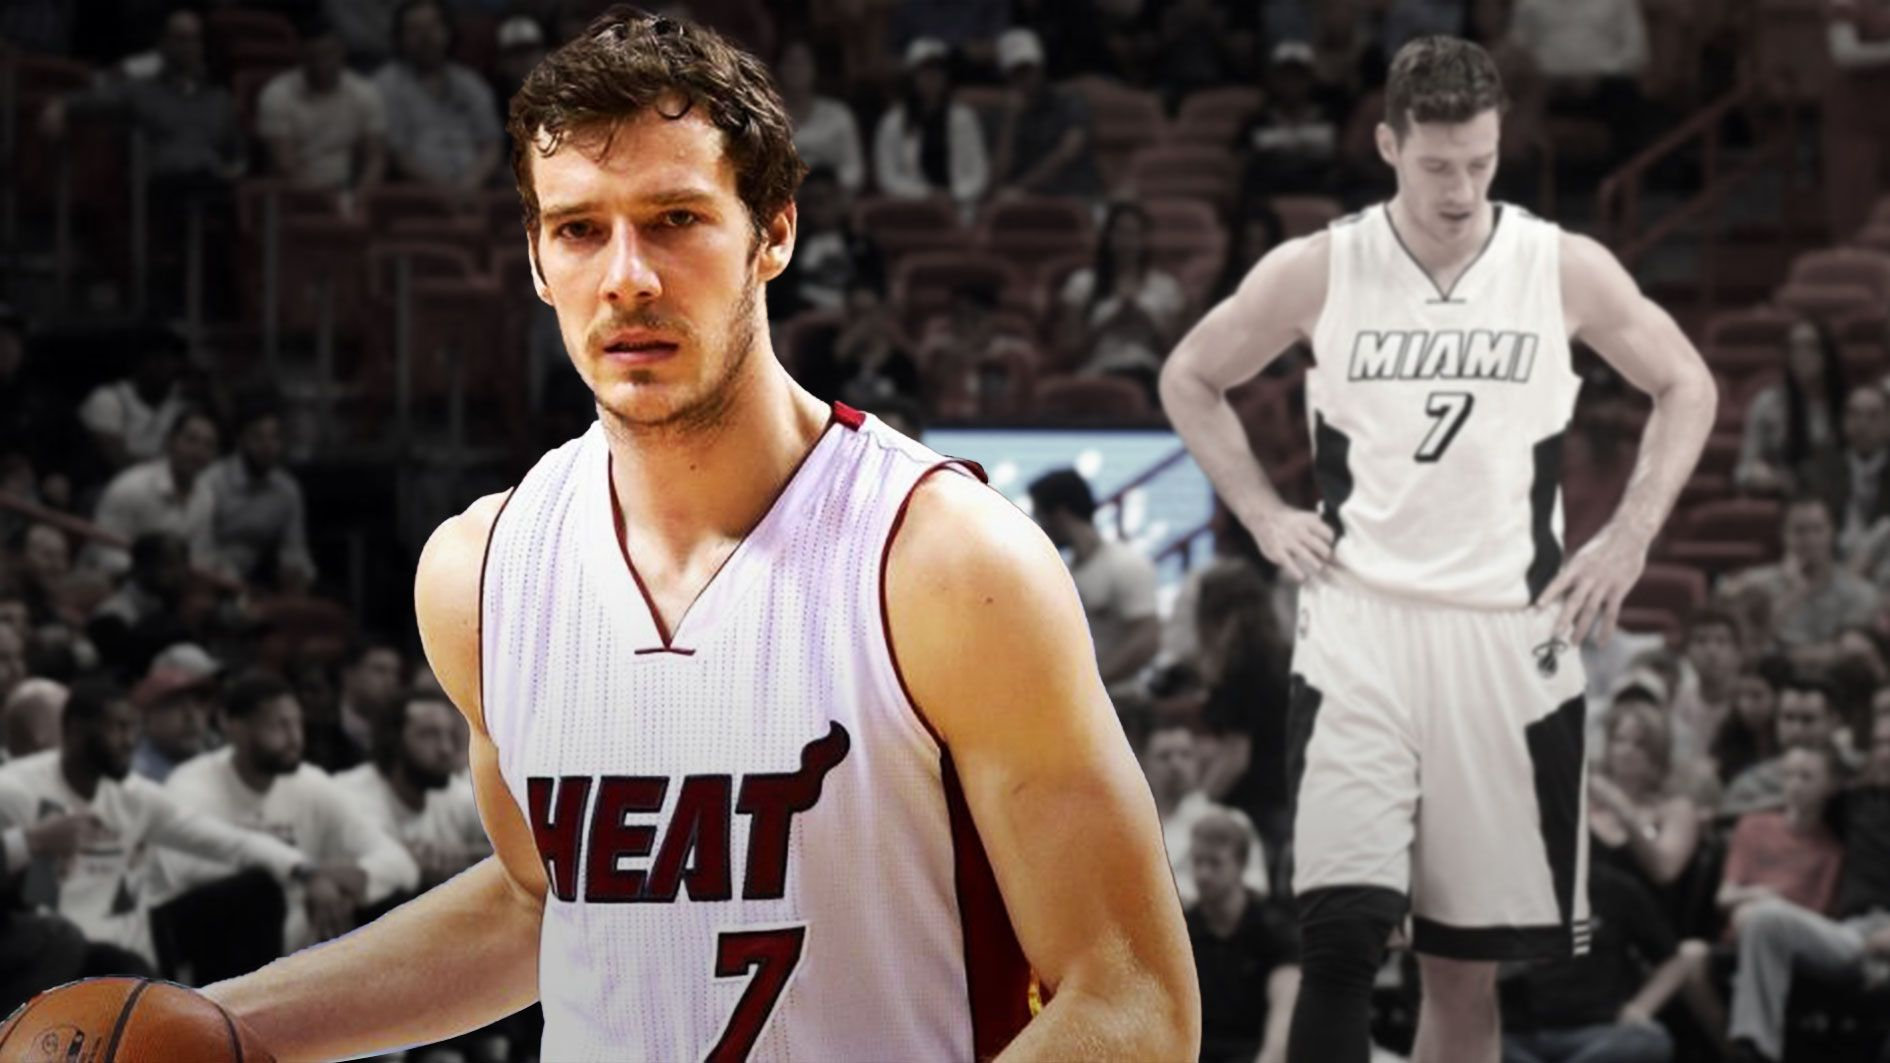 NBA Trade Buzz: Lakers Could Land Dragic Via Trade With Heat